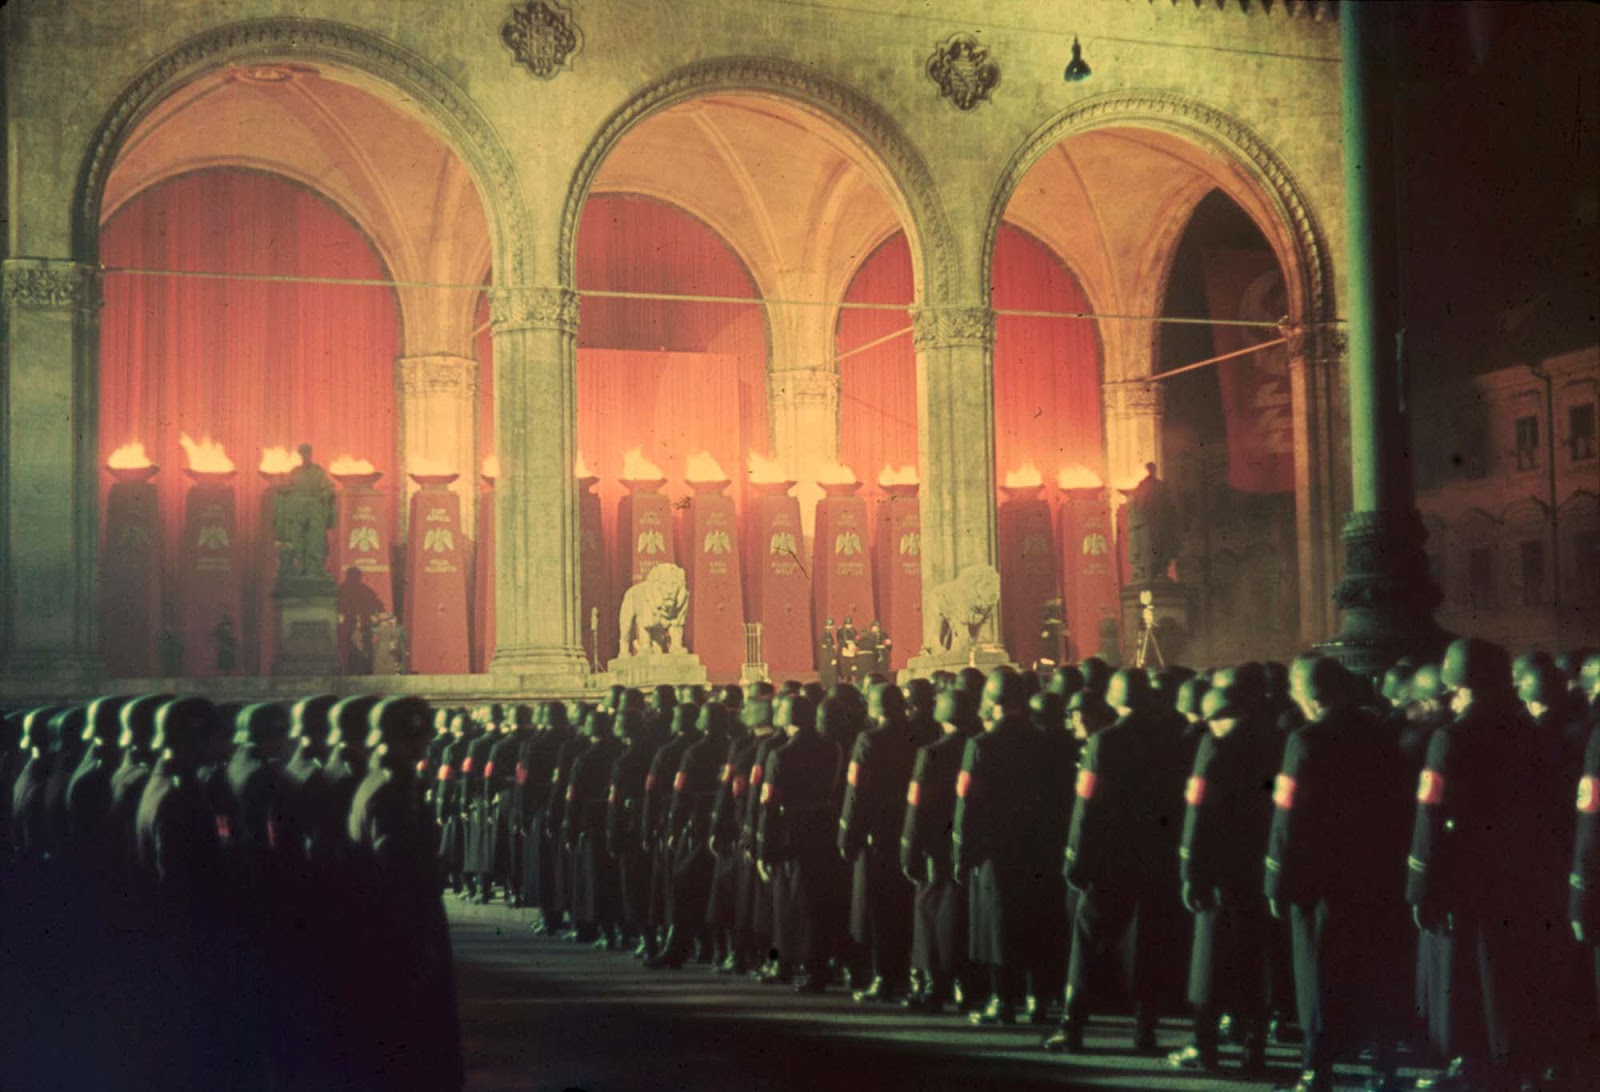 Annual midnight swearing-in of Nazi SS troops, Feldherrnhalle, Munich, 1938.